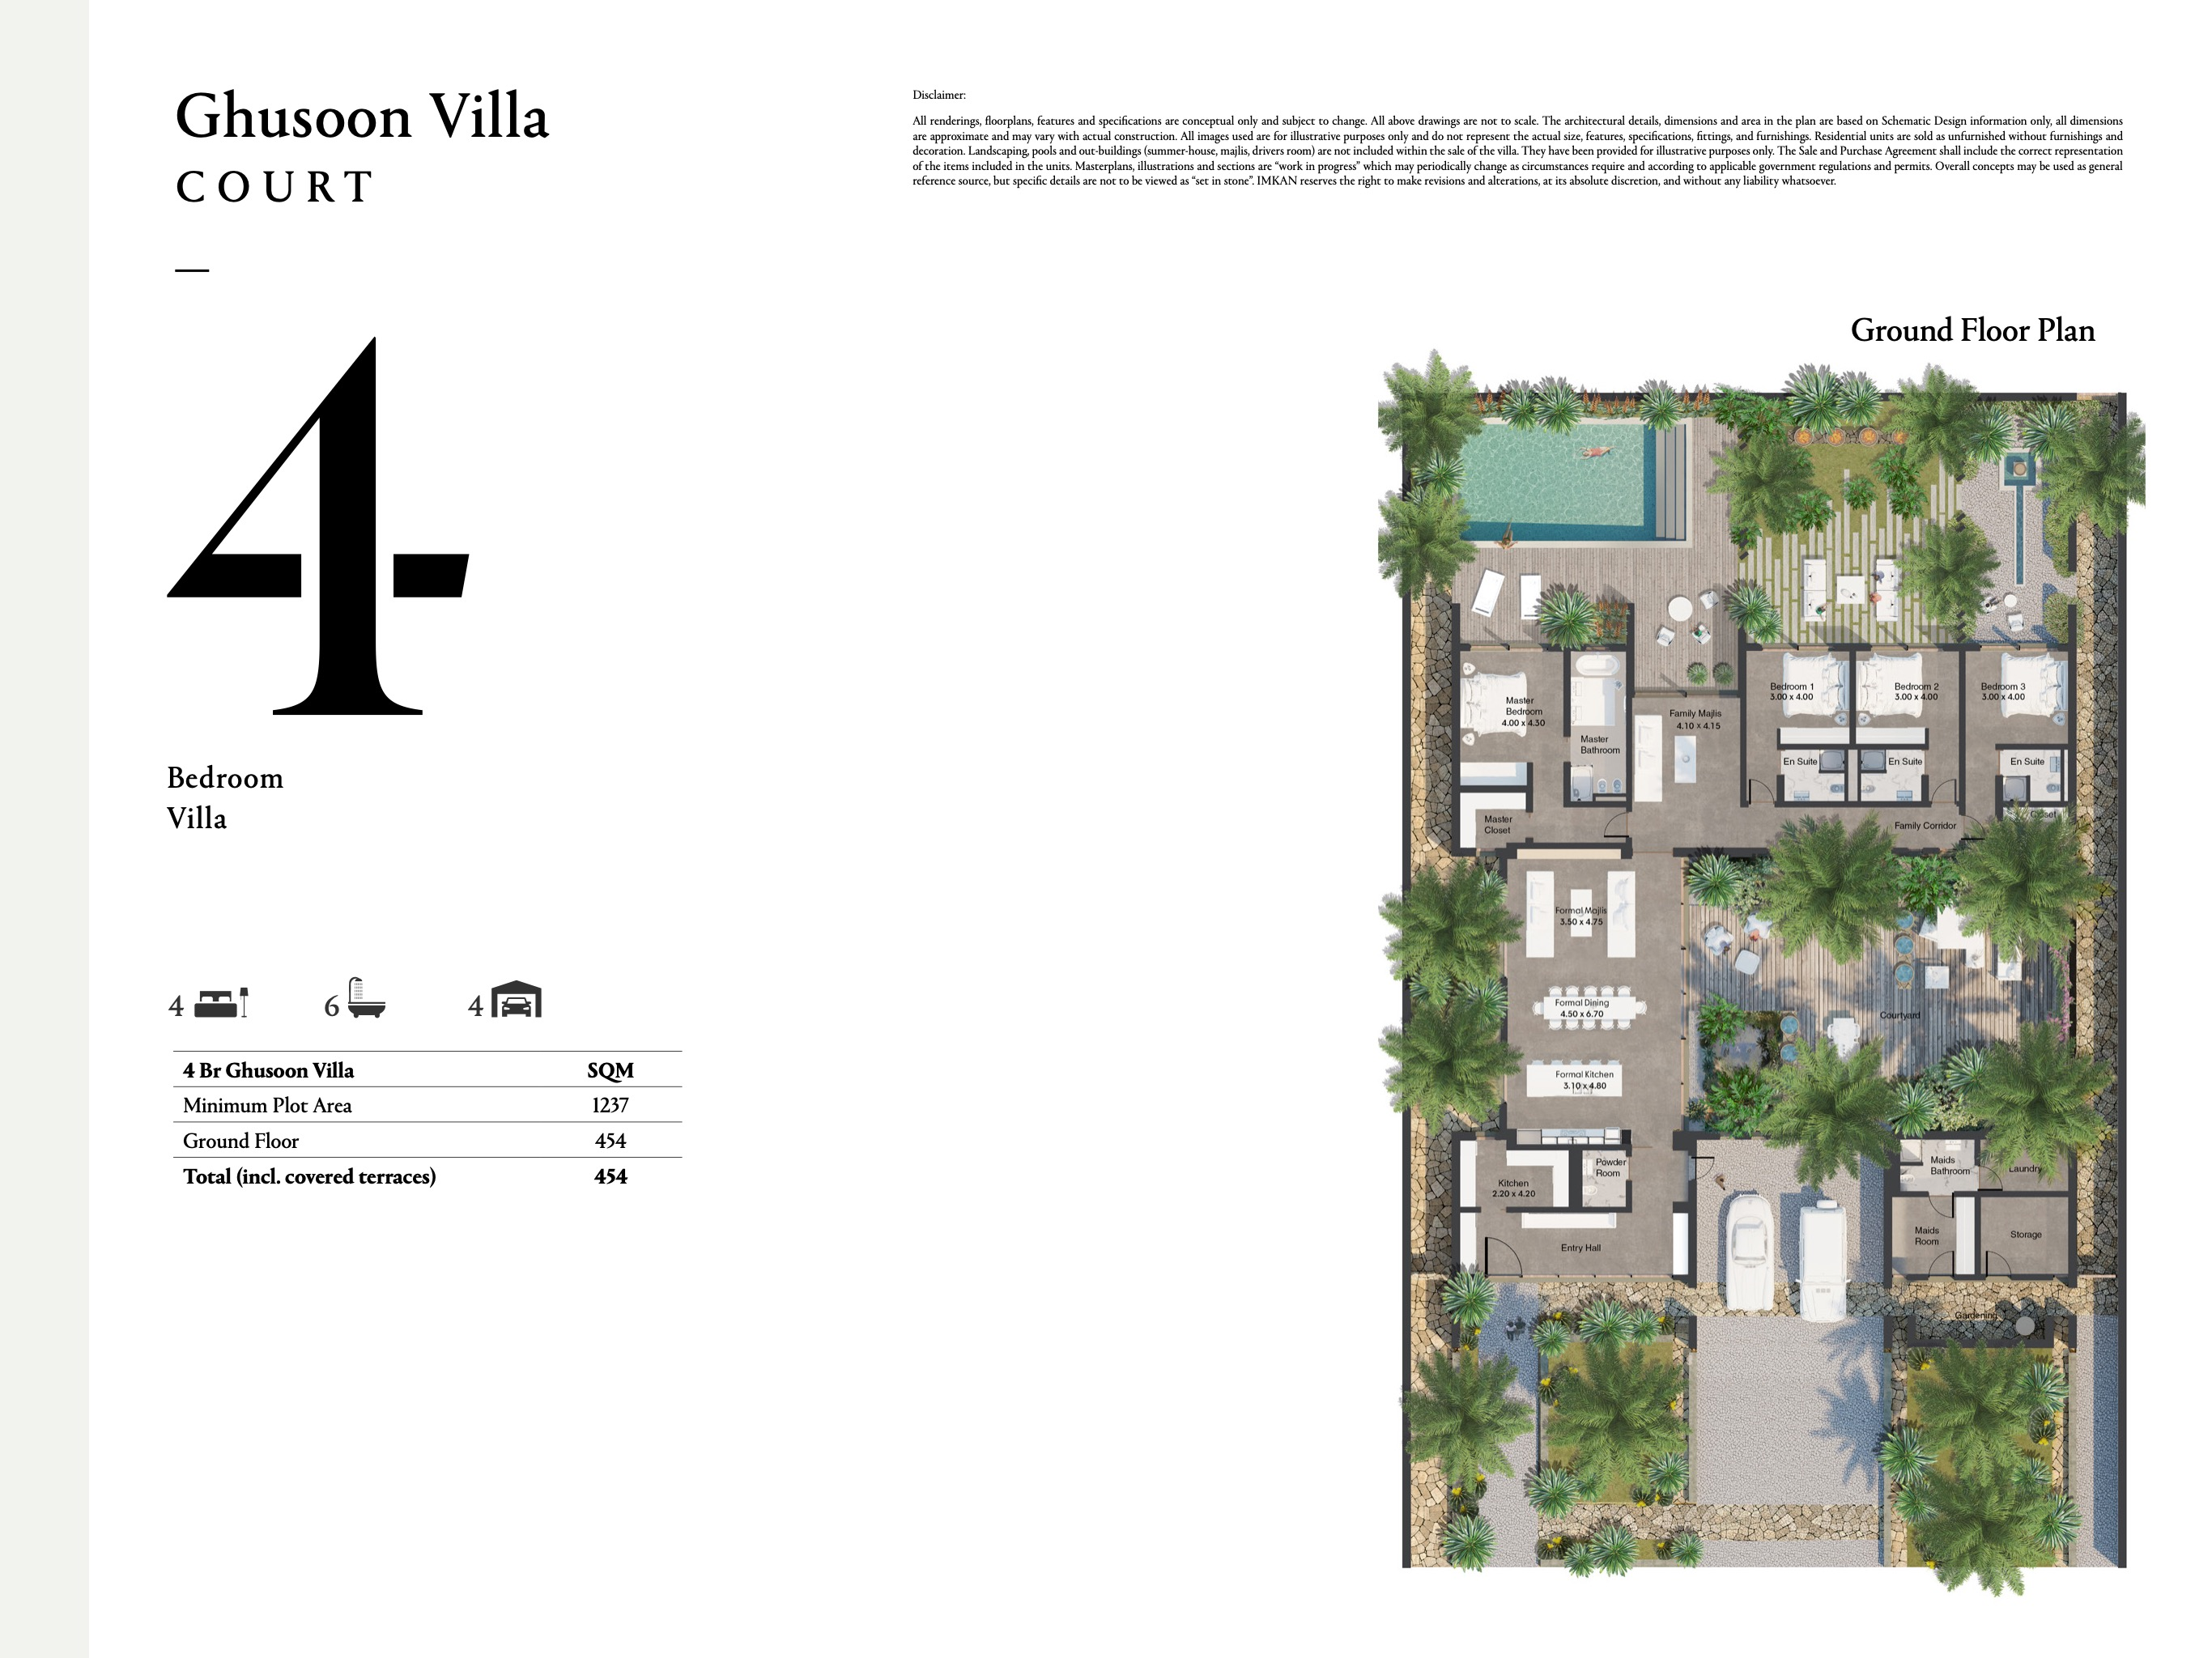 4 bedroom villas with a size area of 454 sqm